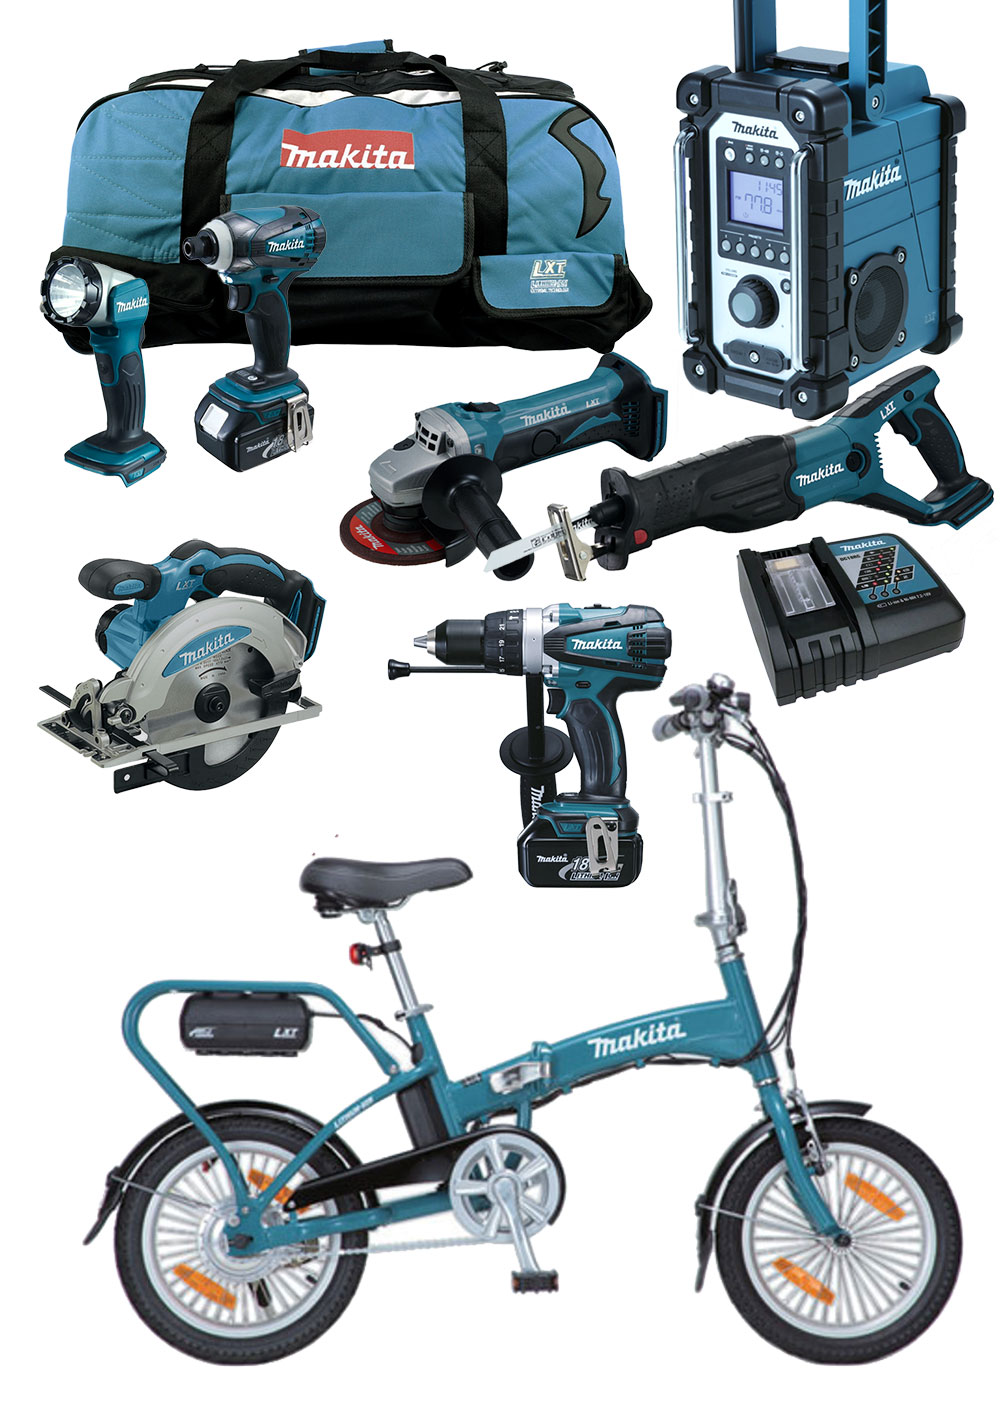 makita 18v profi akku werkzeug set bby180 z elektro klapp. Black Bedroom Furniture Sets. Home Design Ideas